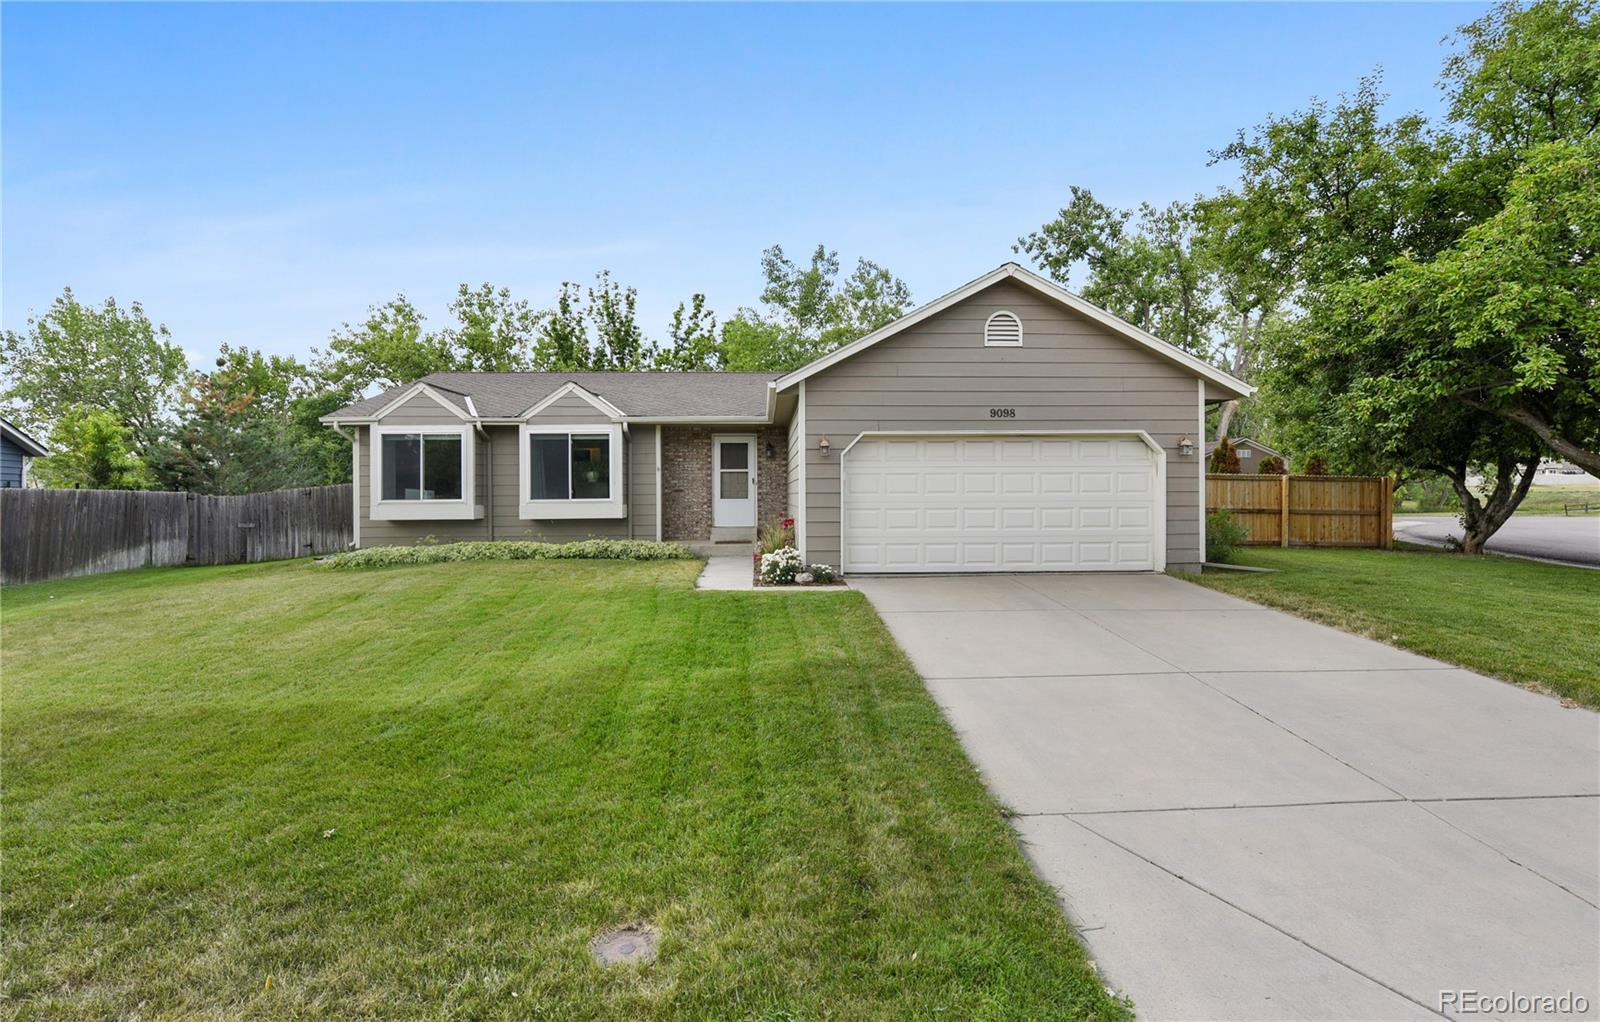 9098 W Chestnut Avenue Property Photo - Littleton, CO real estate listing